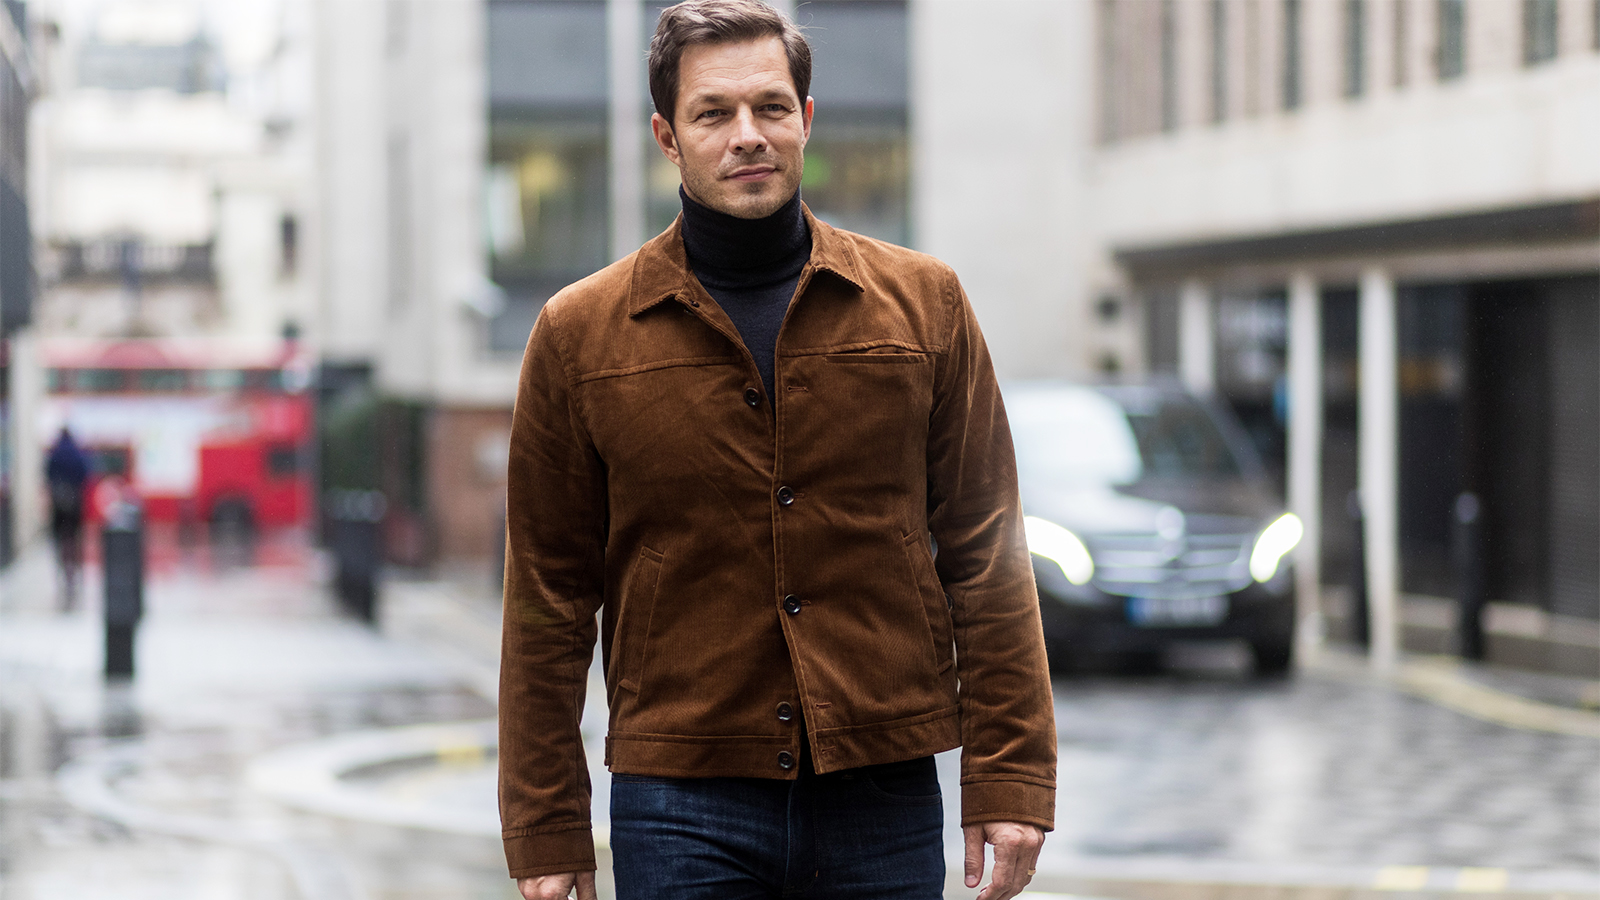 How cords have made a comeback - Paul Sculfer wearing brown cord jacket